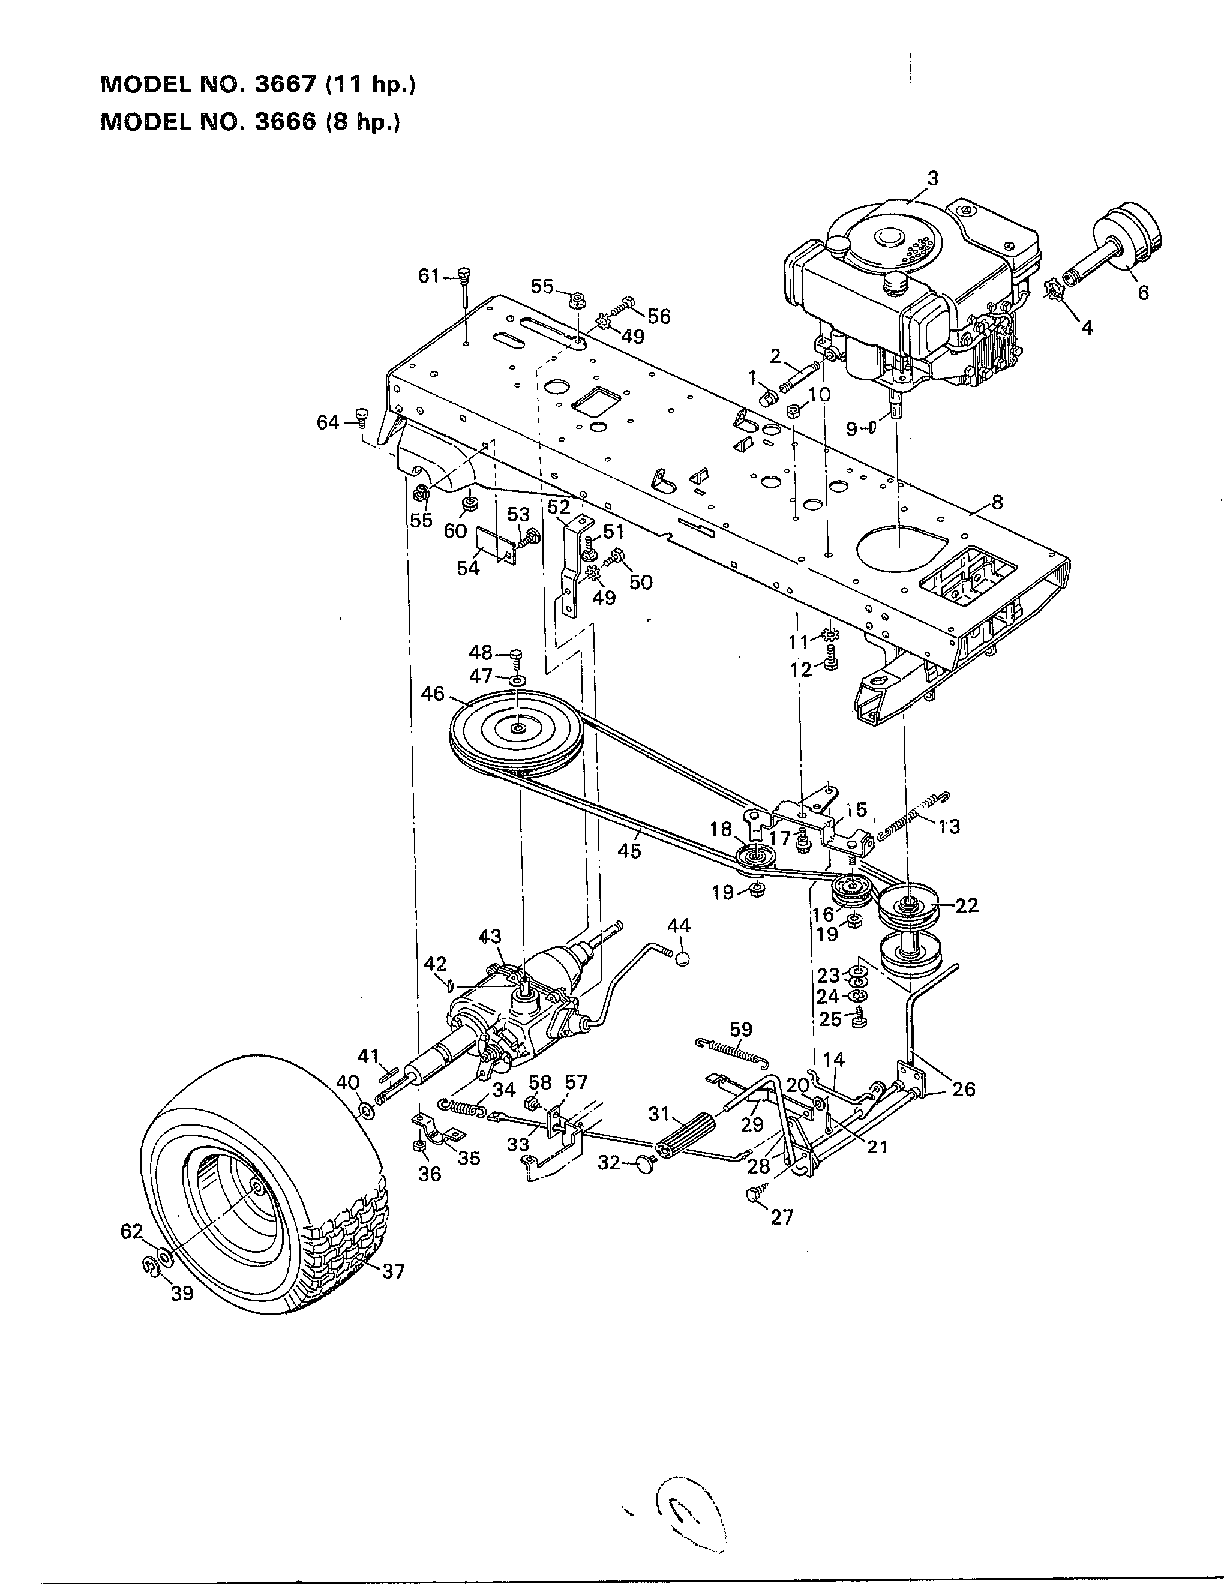 ENGINE/FRAME/MUFFLER/WHEELS Diagram & Parts List for Model